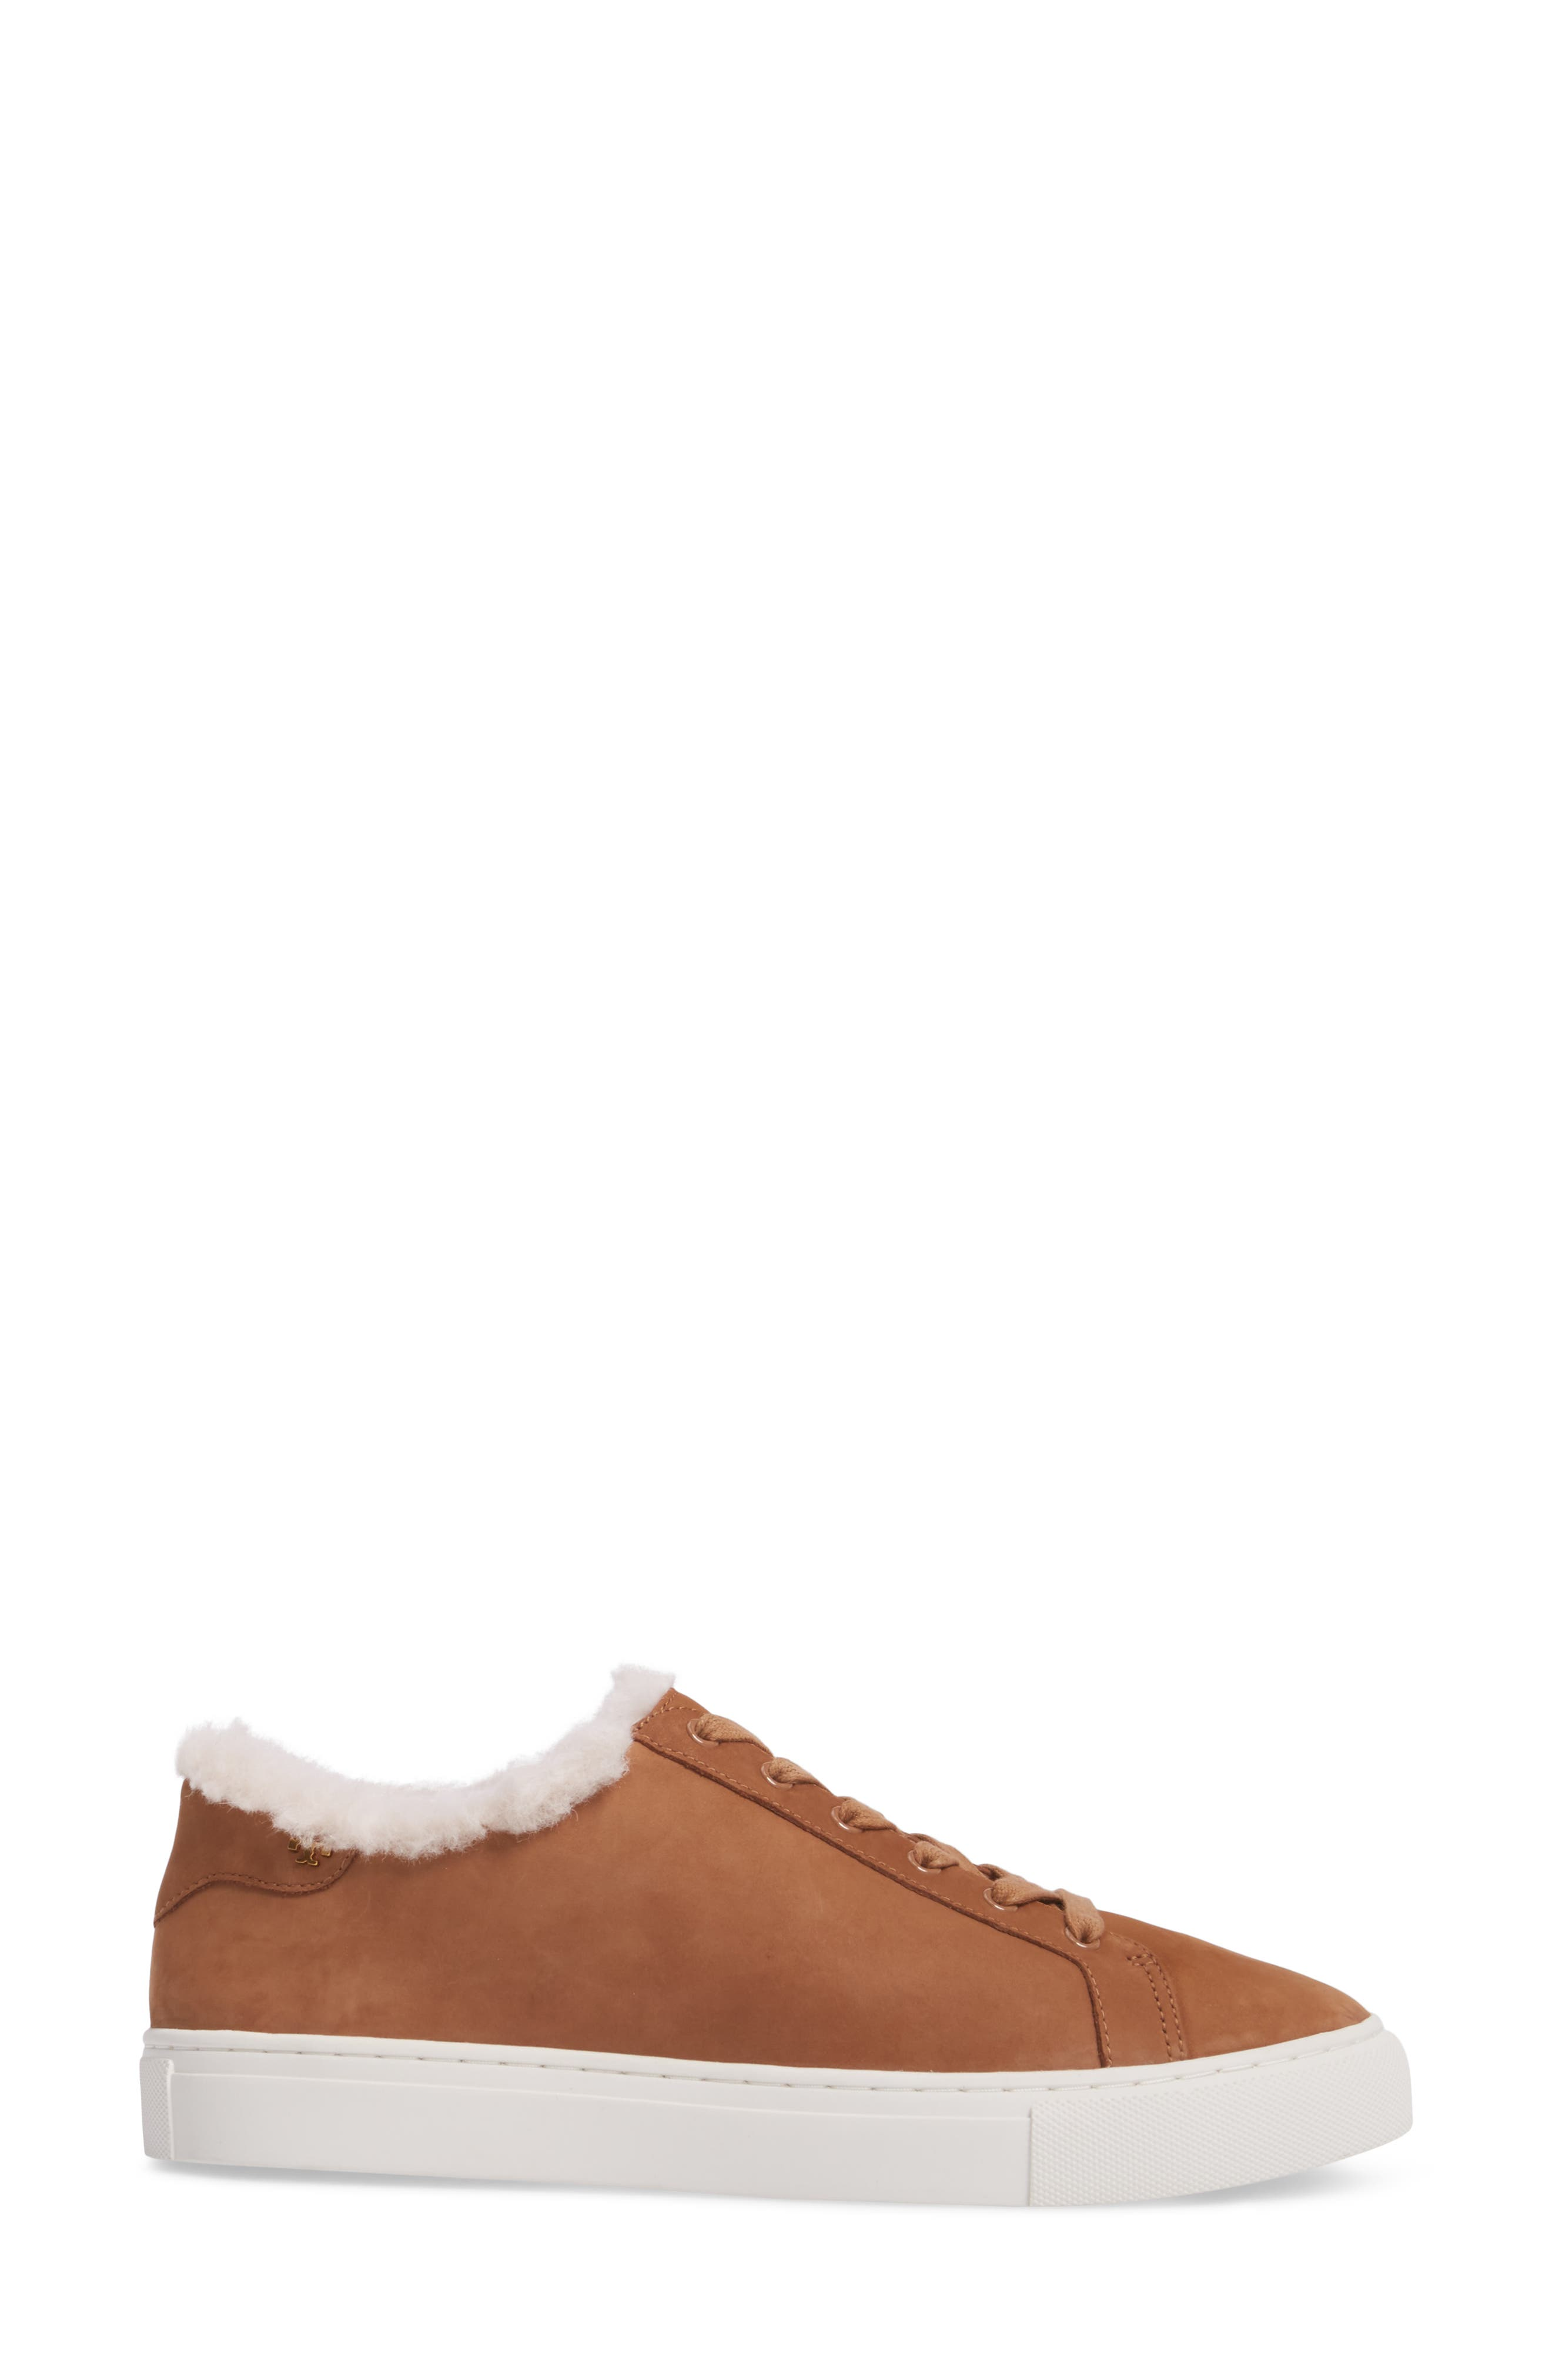 Lawrence Genuine Shearling Lined Sneaker,                             Alternate thumbnail 6, color,